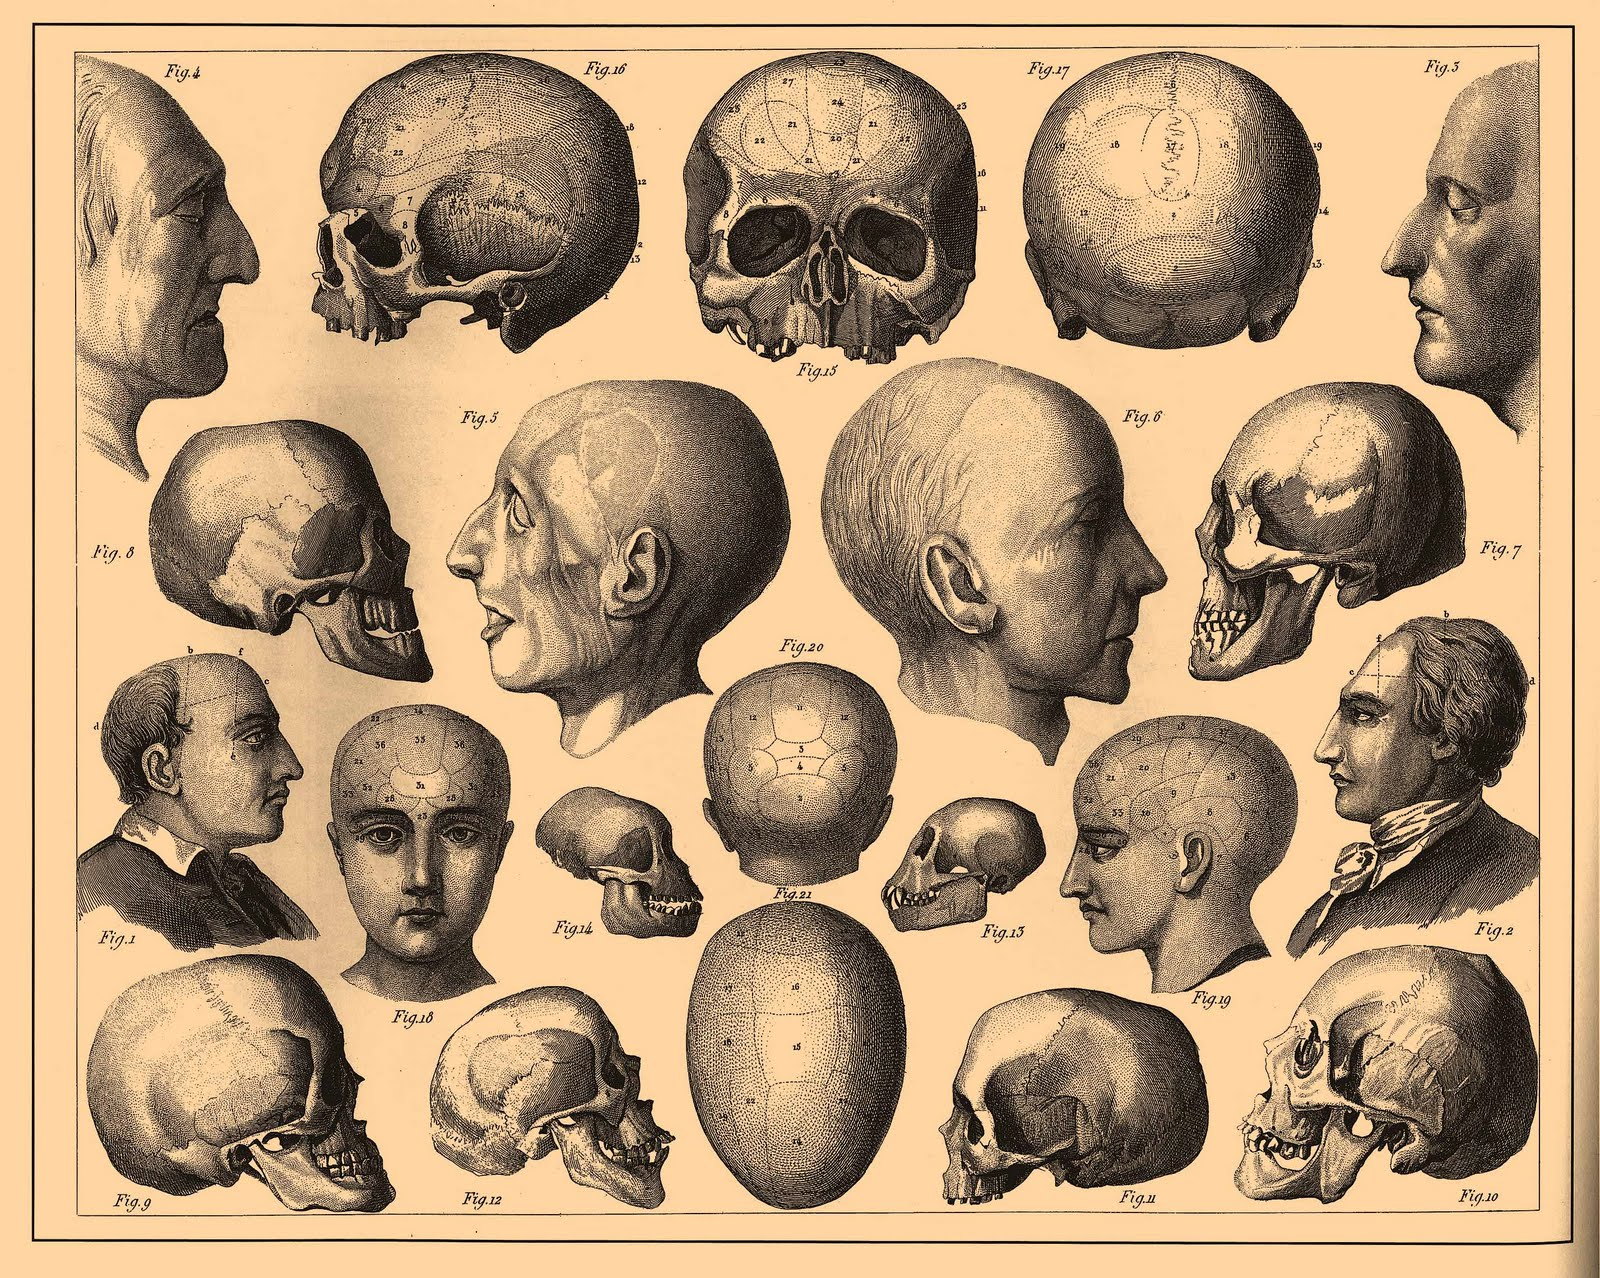 Vintage Ephemera: Skull and bone Illustrations (1890—1907)